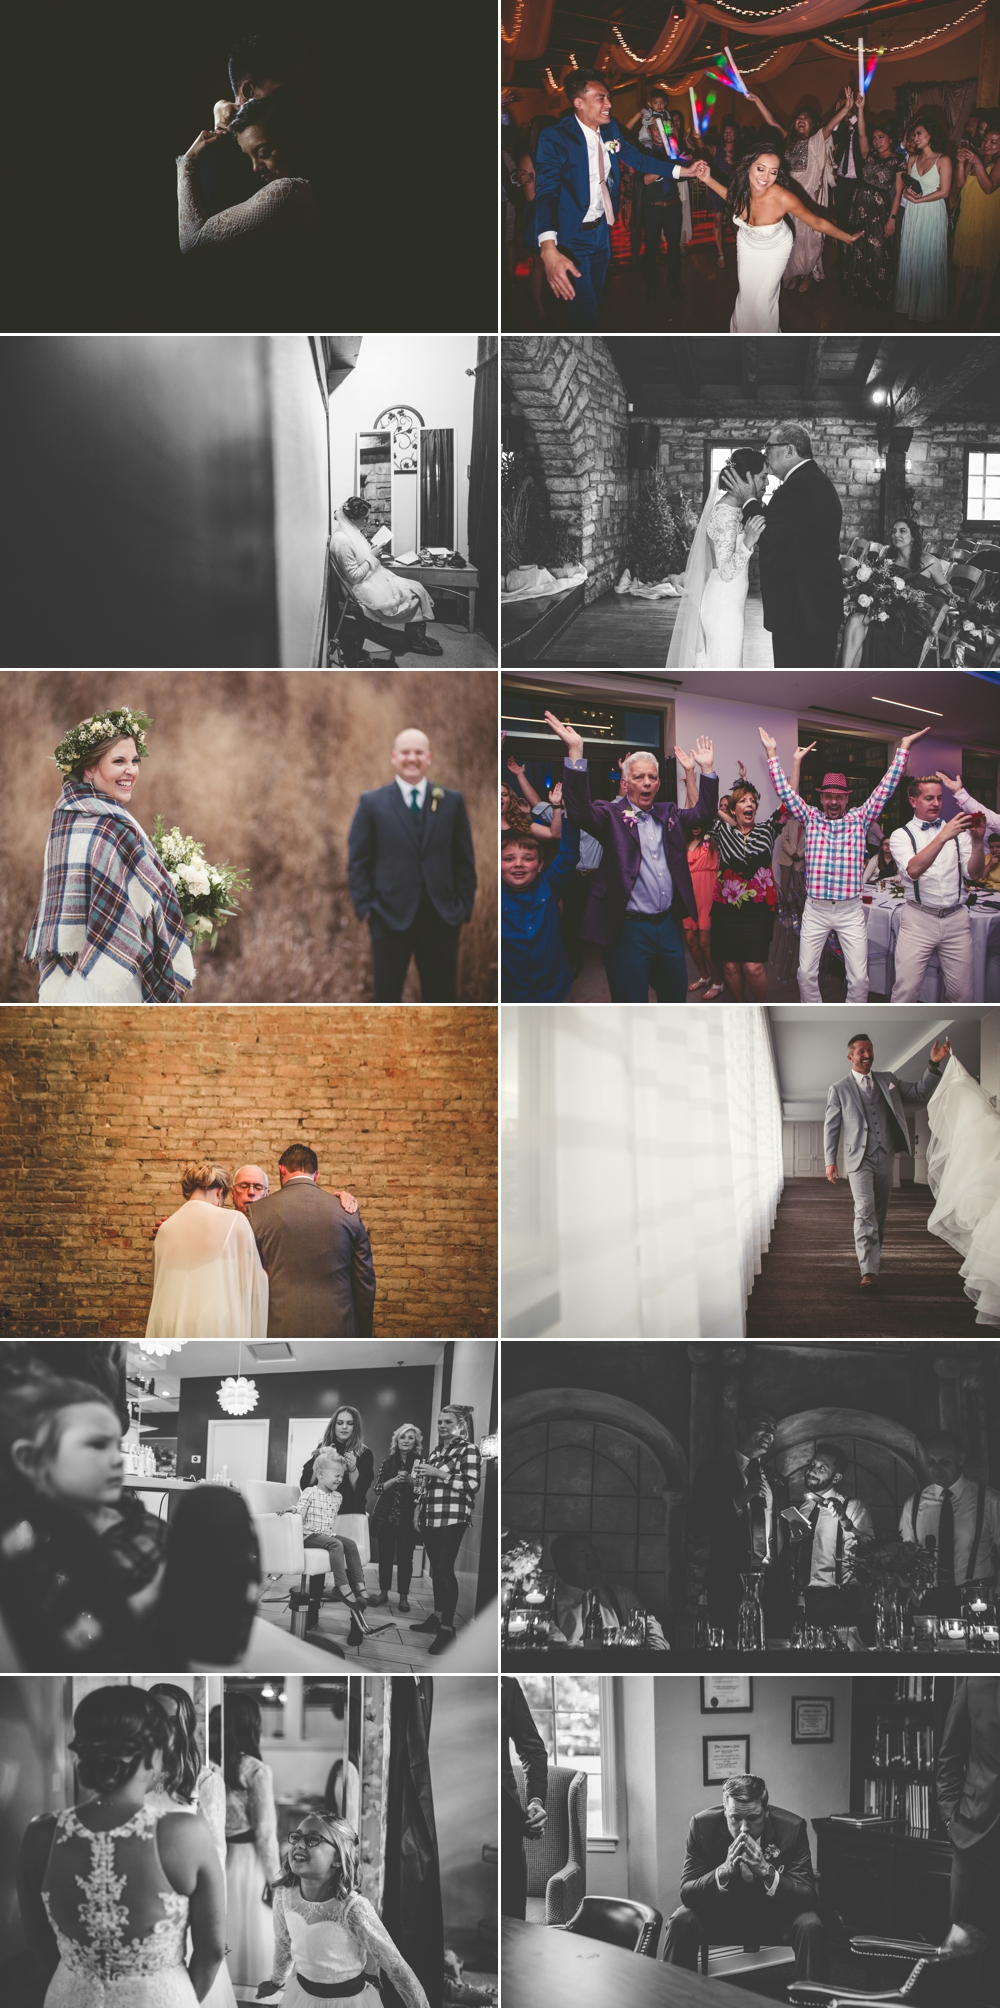 jason_domingues_photography_best_kansas_city_wedding_photographer_kc_weddings_0009.JPG